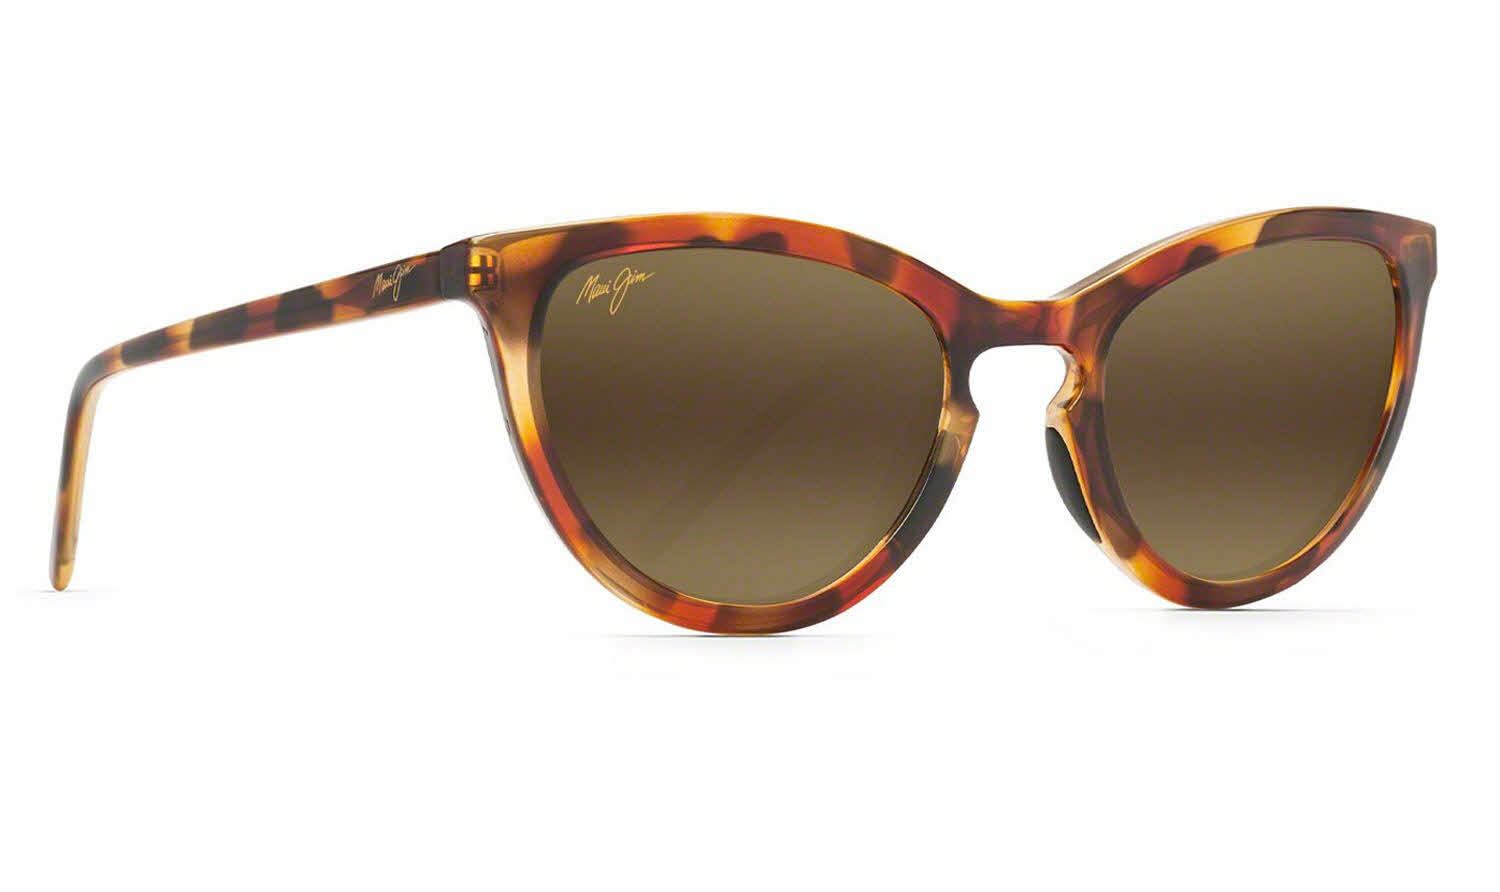 Maui Jim Star Gazing-813 Prescription Sunglasses